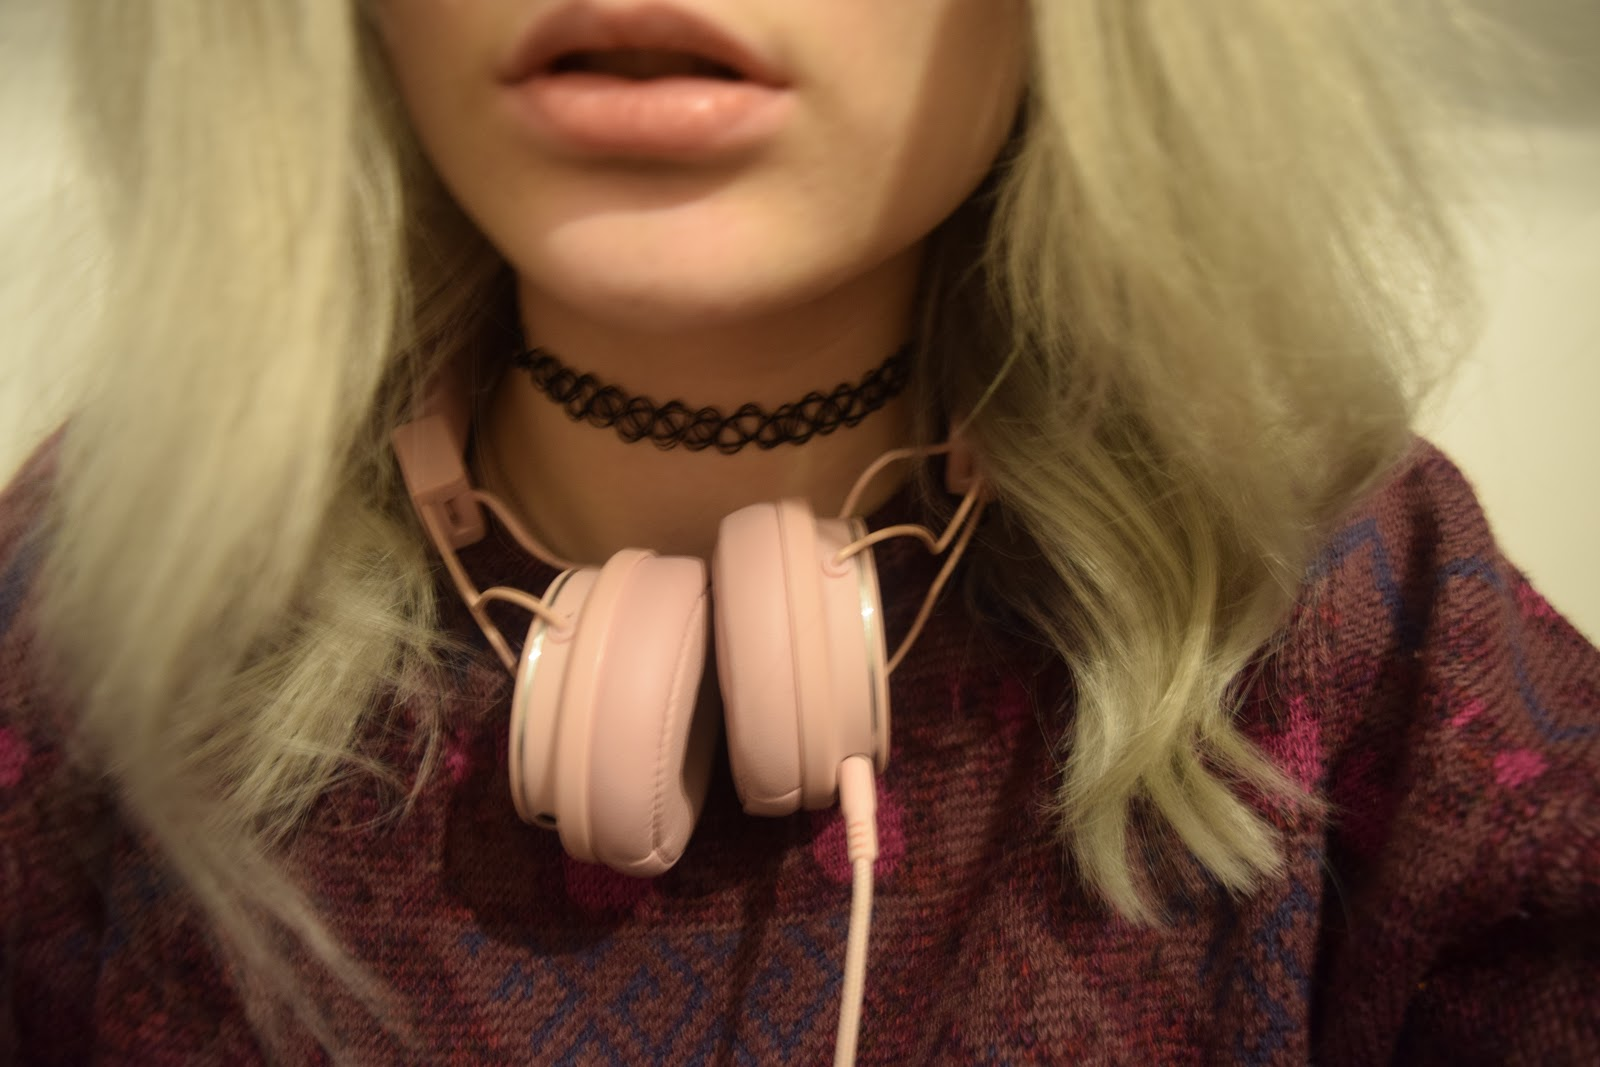 girl with silver hair wearing headphones round her neck